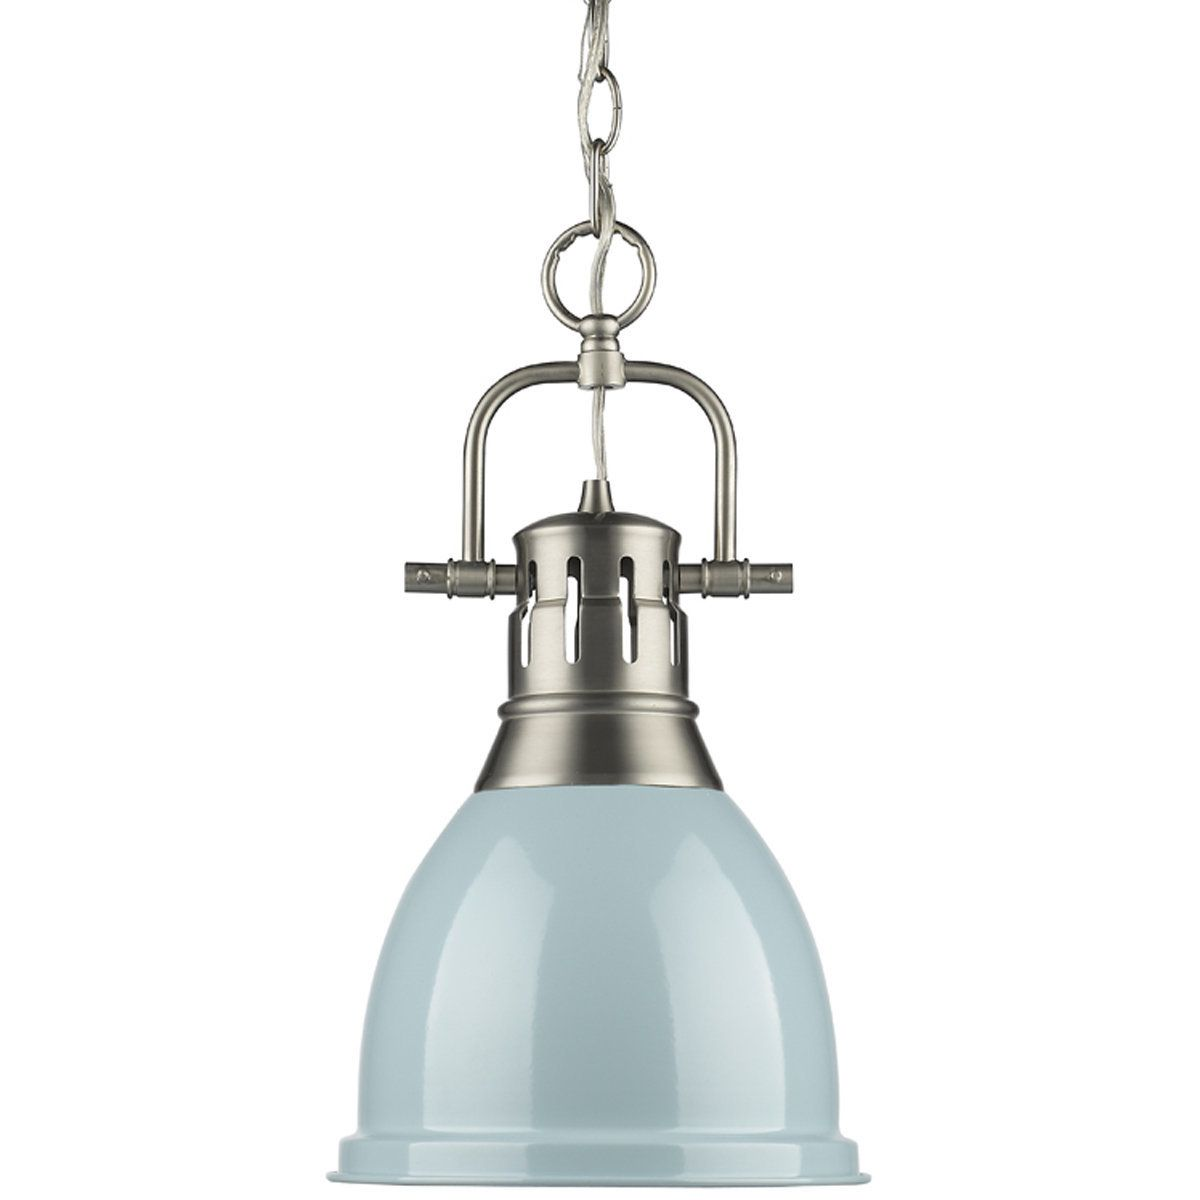 Classic Dome Shade Pendant Light With Chain Small Mini Pendant Lights Small Pendant Lights Pendant Light